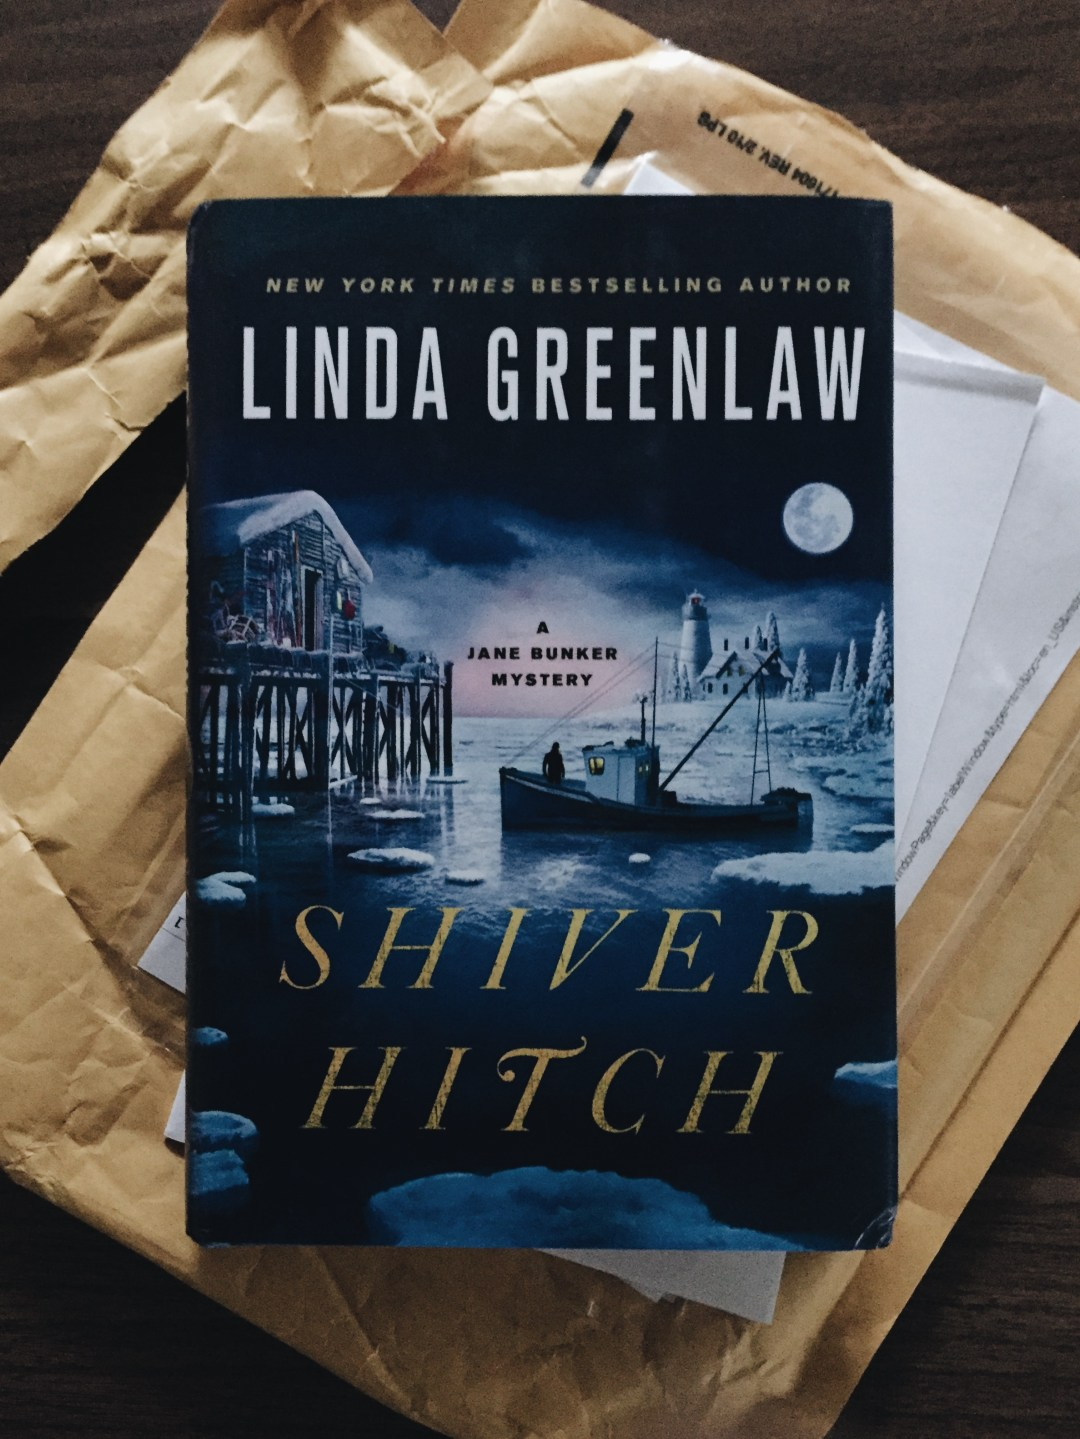 shiver hitch by linda greenlaw - book review | brunch at audrey's